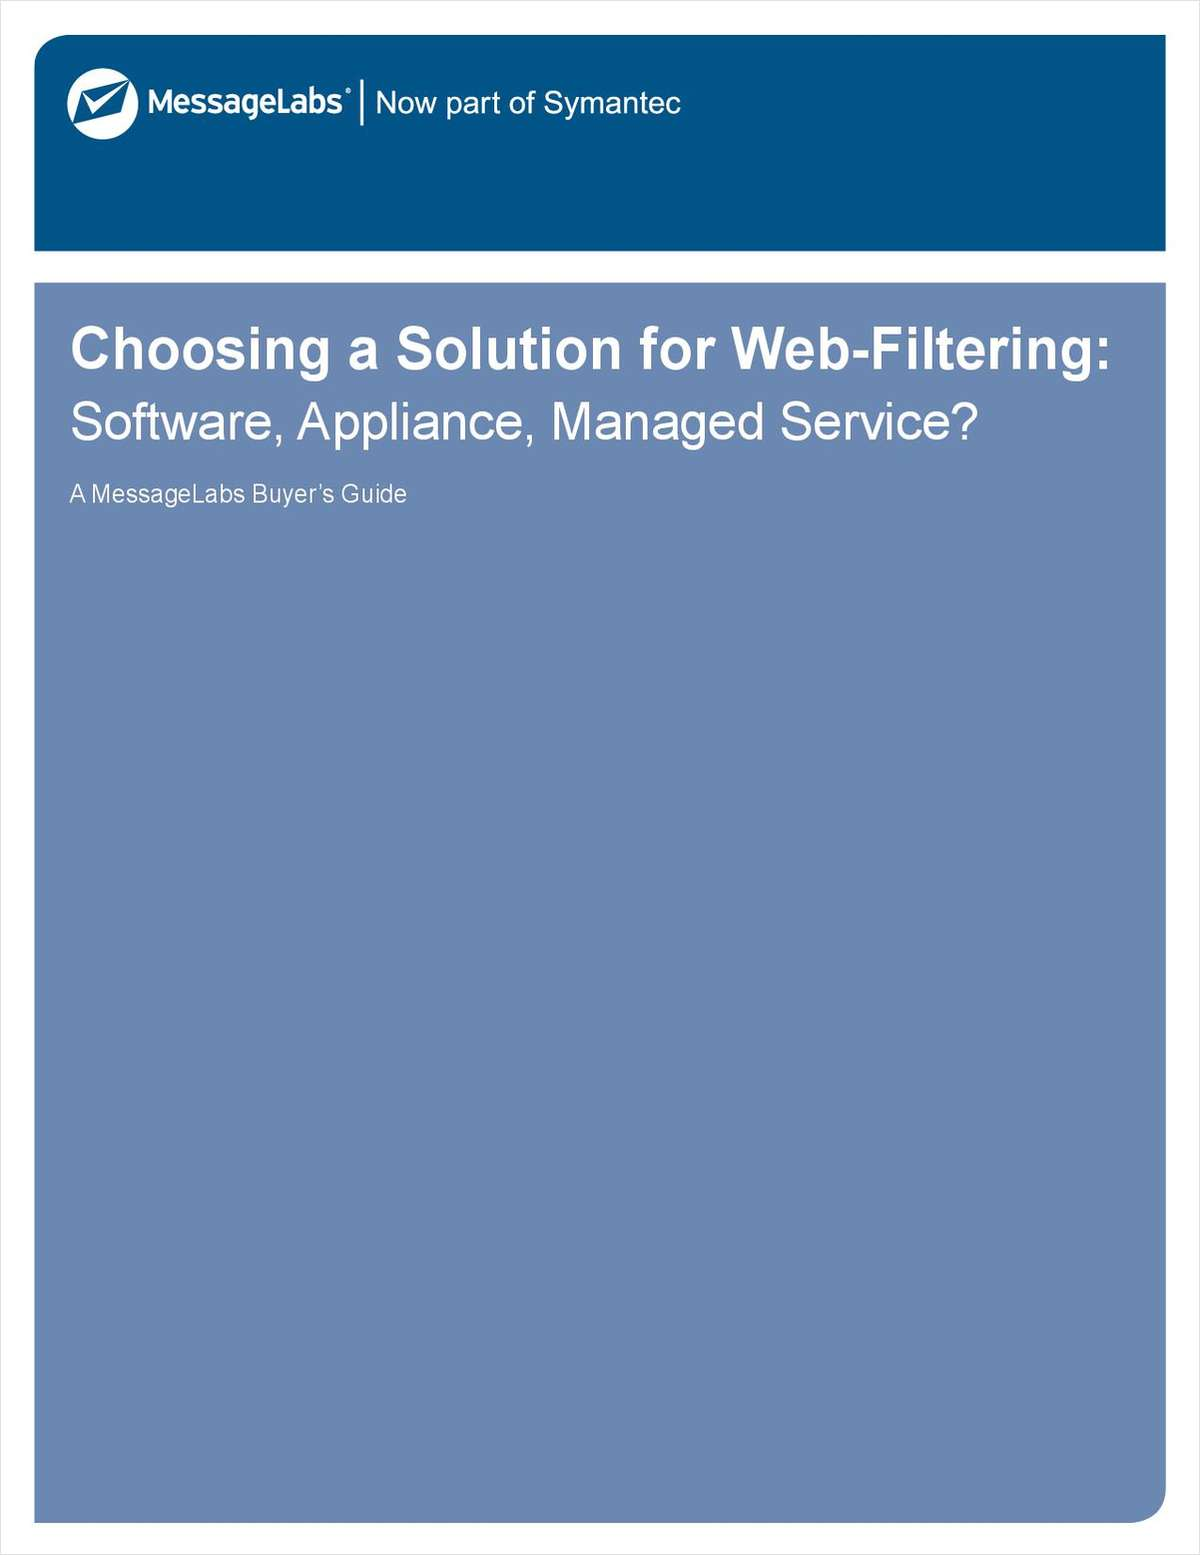 Choosing a Solution for Web-Filtering: Software, Appliance, Managed Service?